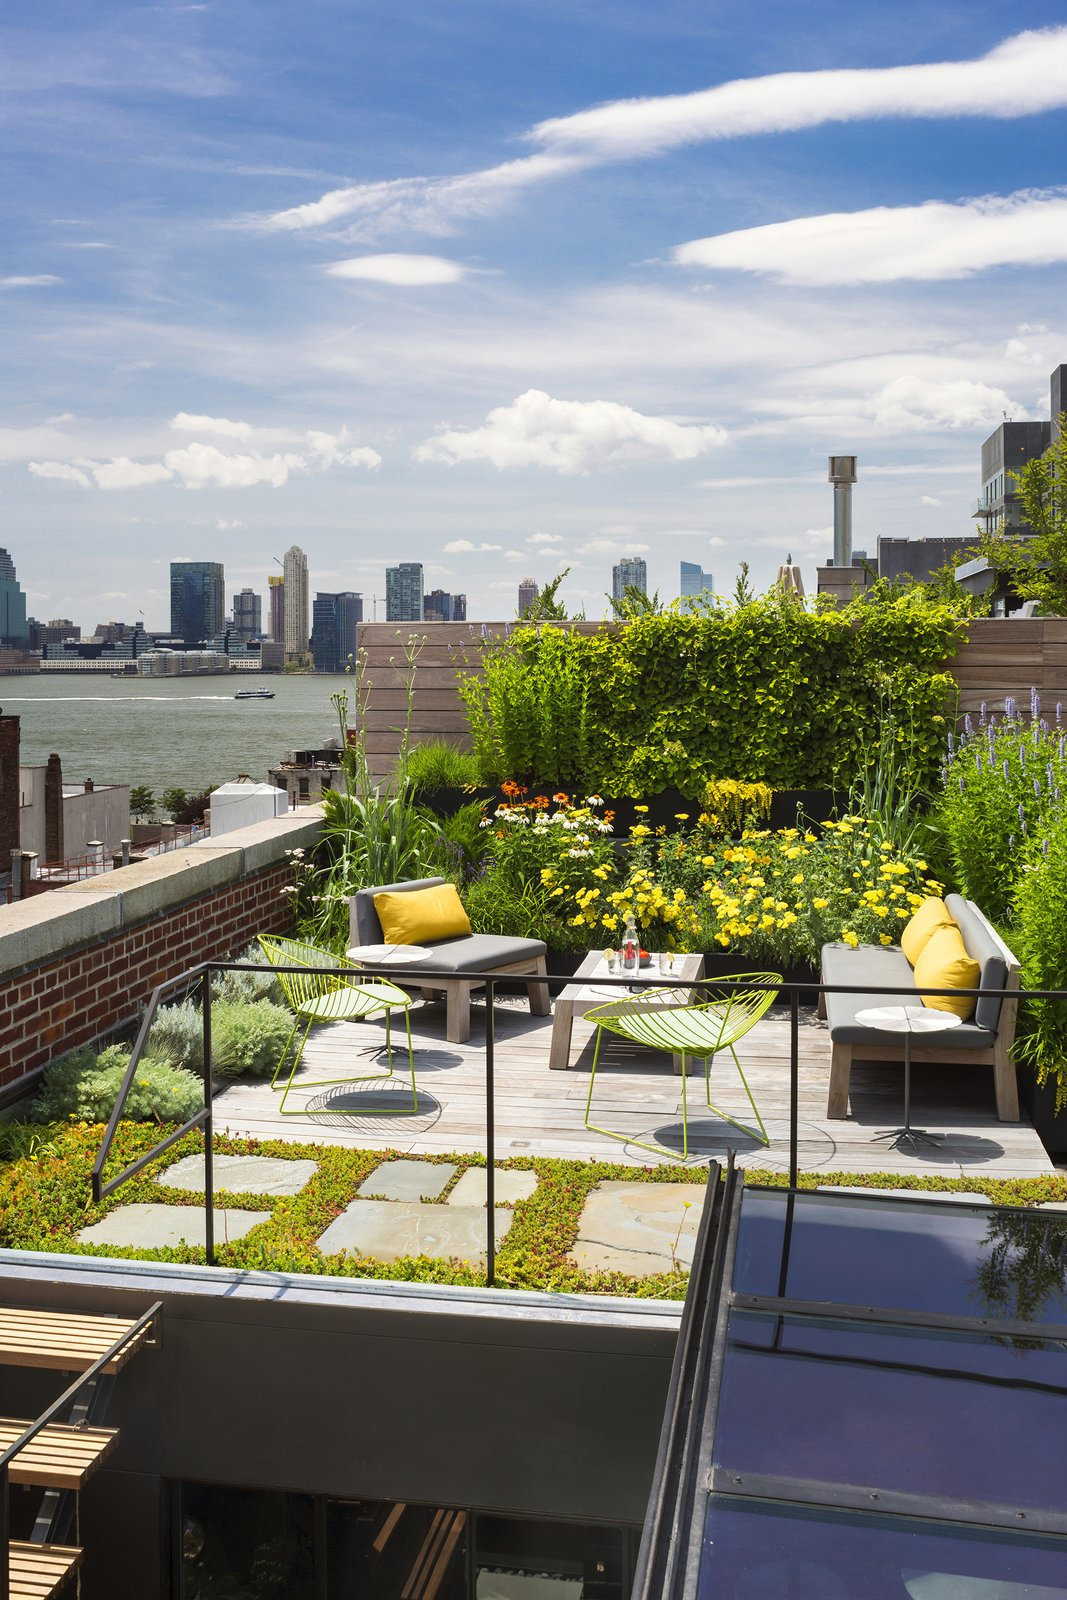 The new wooden rooftop terrace is surrounded by a green roof garden utilizing reclaimed bluestone pavers and native plant species that require little water while insulating the environment below.  Tribeca Loft by Andrew Franz Architect, PLLC